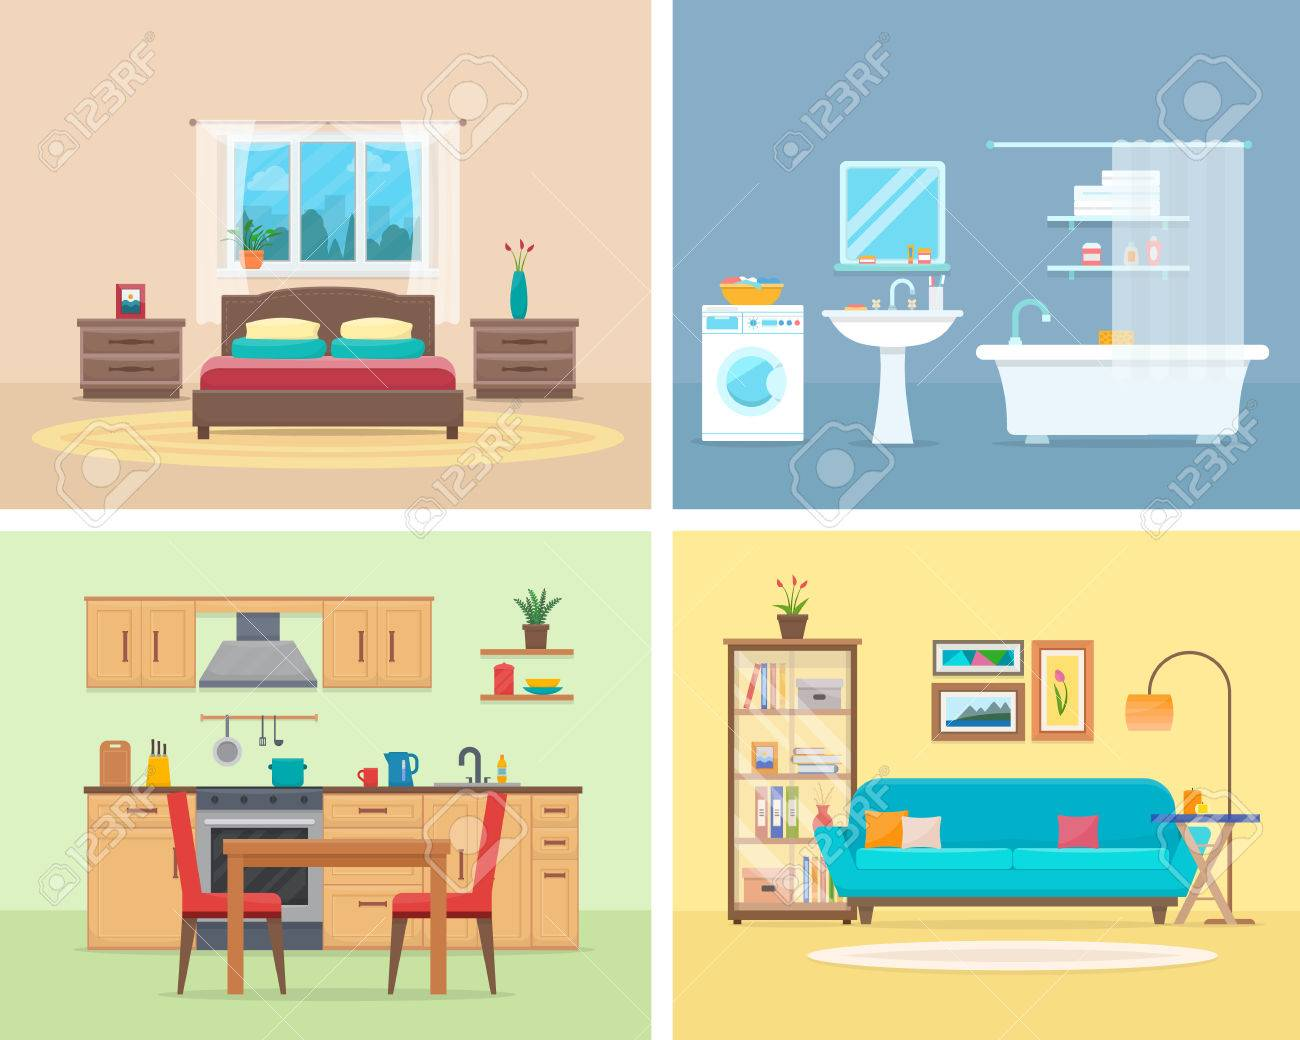 Apartment inside. Detailed modern house interior. Rooms with furniture. Flat style vector illustration. - 68424186